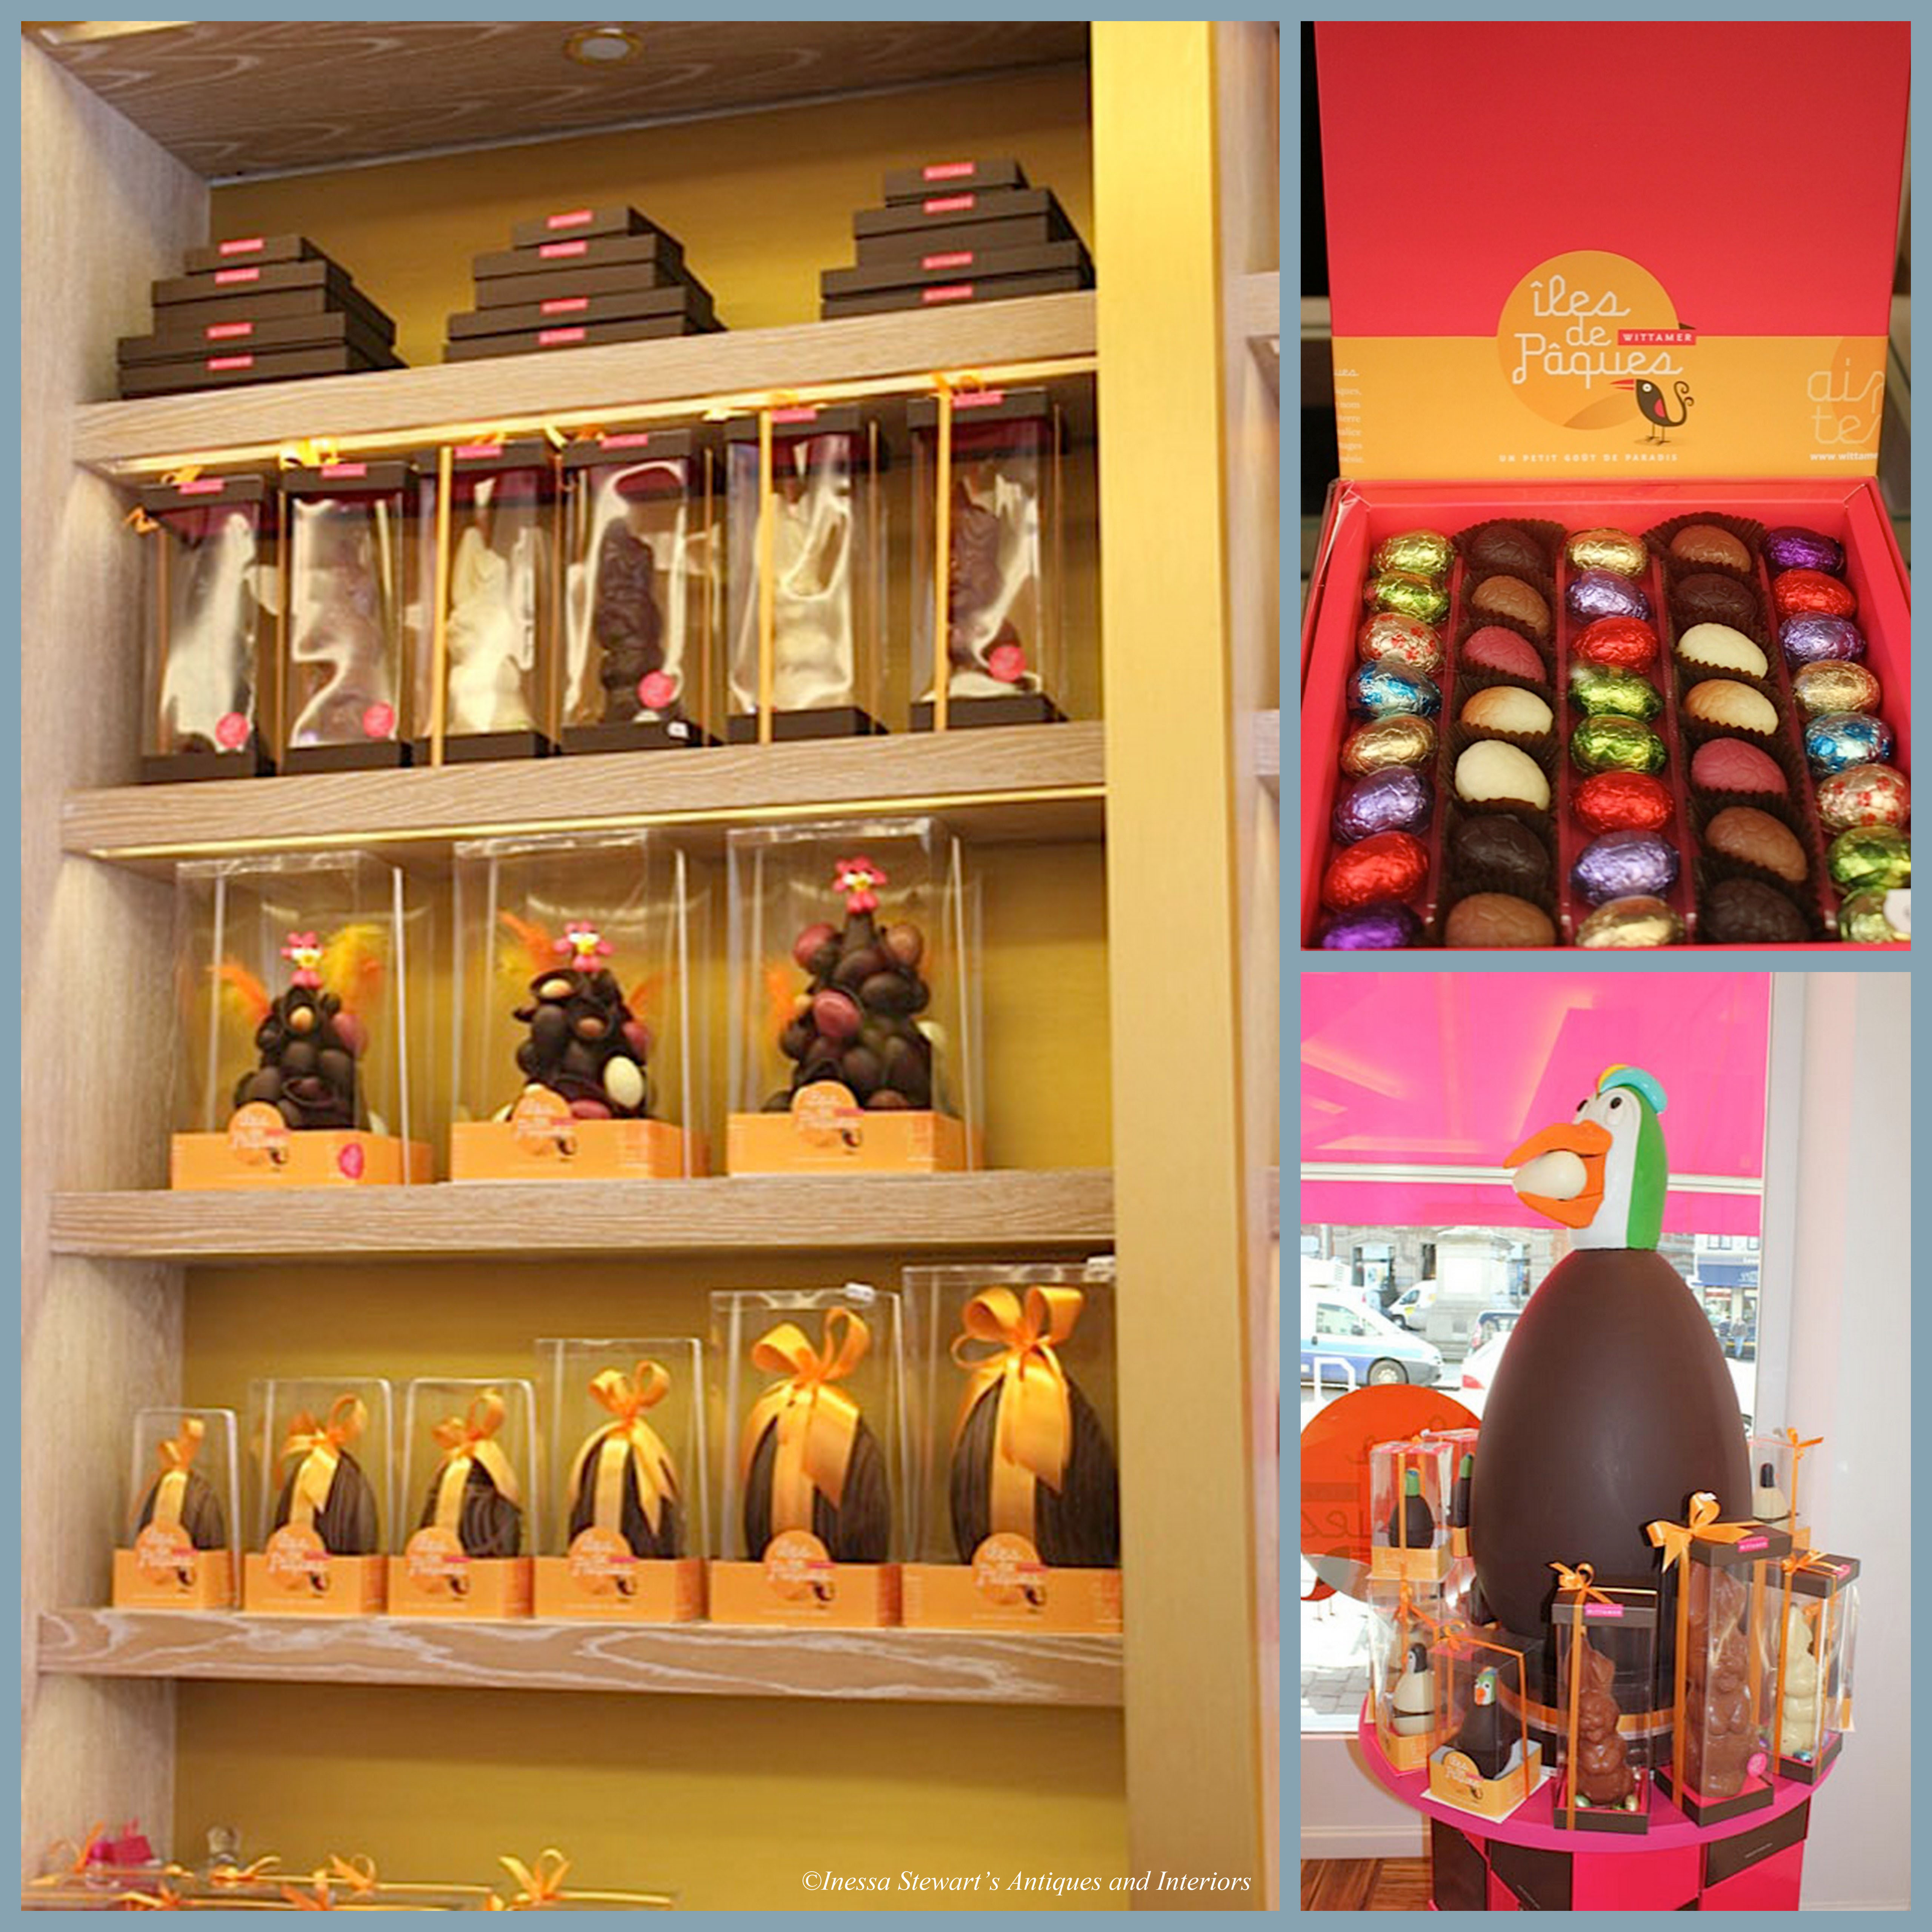 European Chocolate Shop